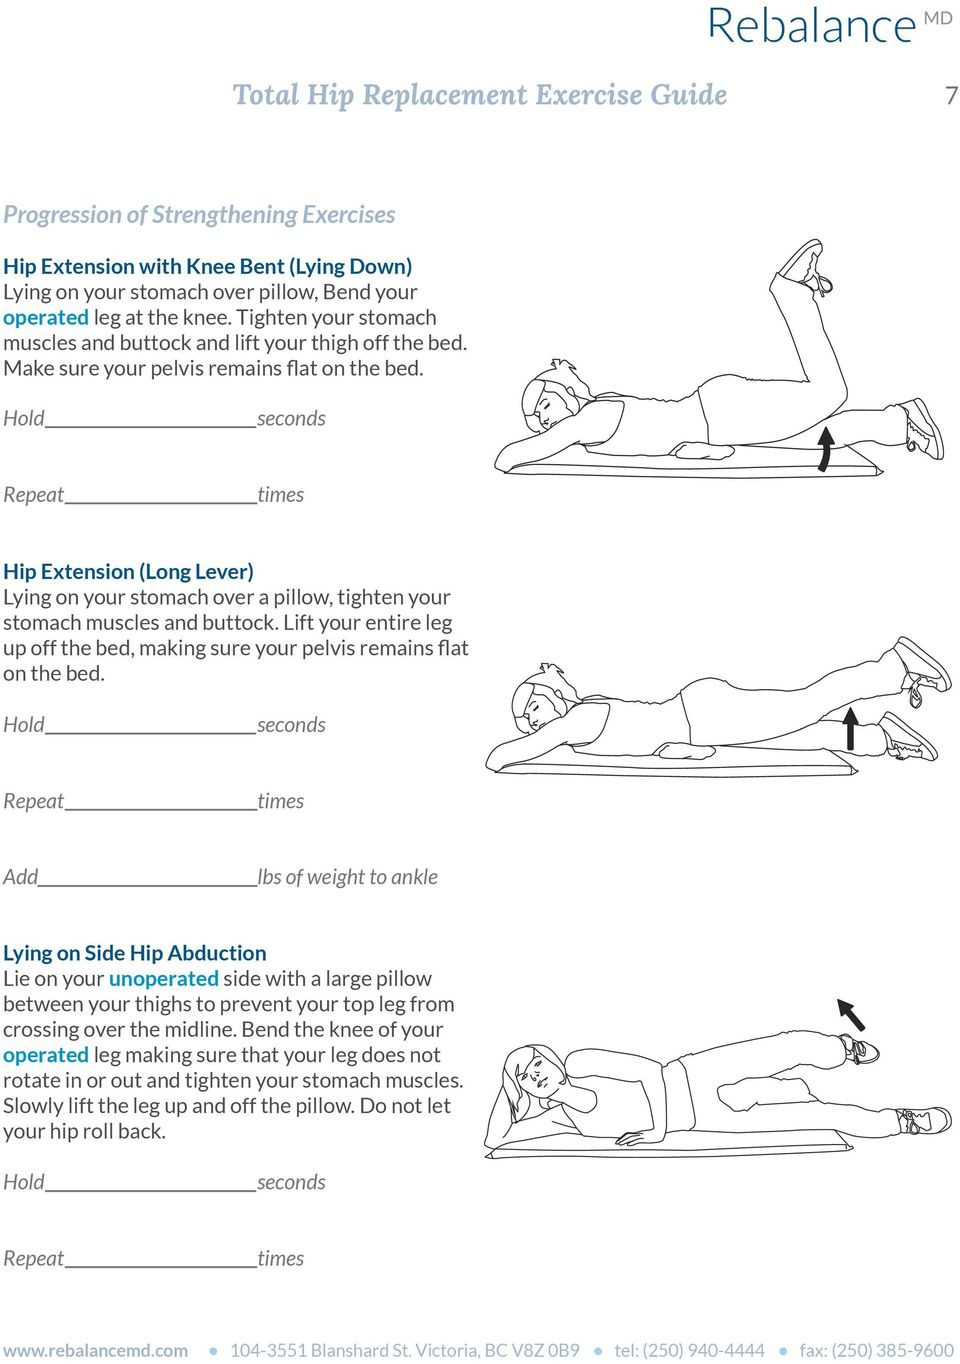 Hip Extension (Long Lever) Lying on your stomach over a pillow, tighten your stomach muscles and buttock. Lift your entire leg up off the bed, making sure your pelvis remains flat on the bed.